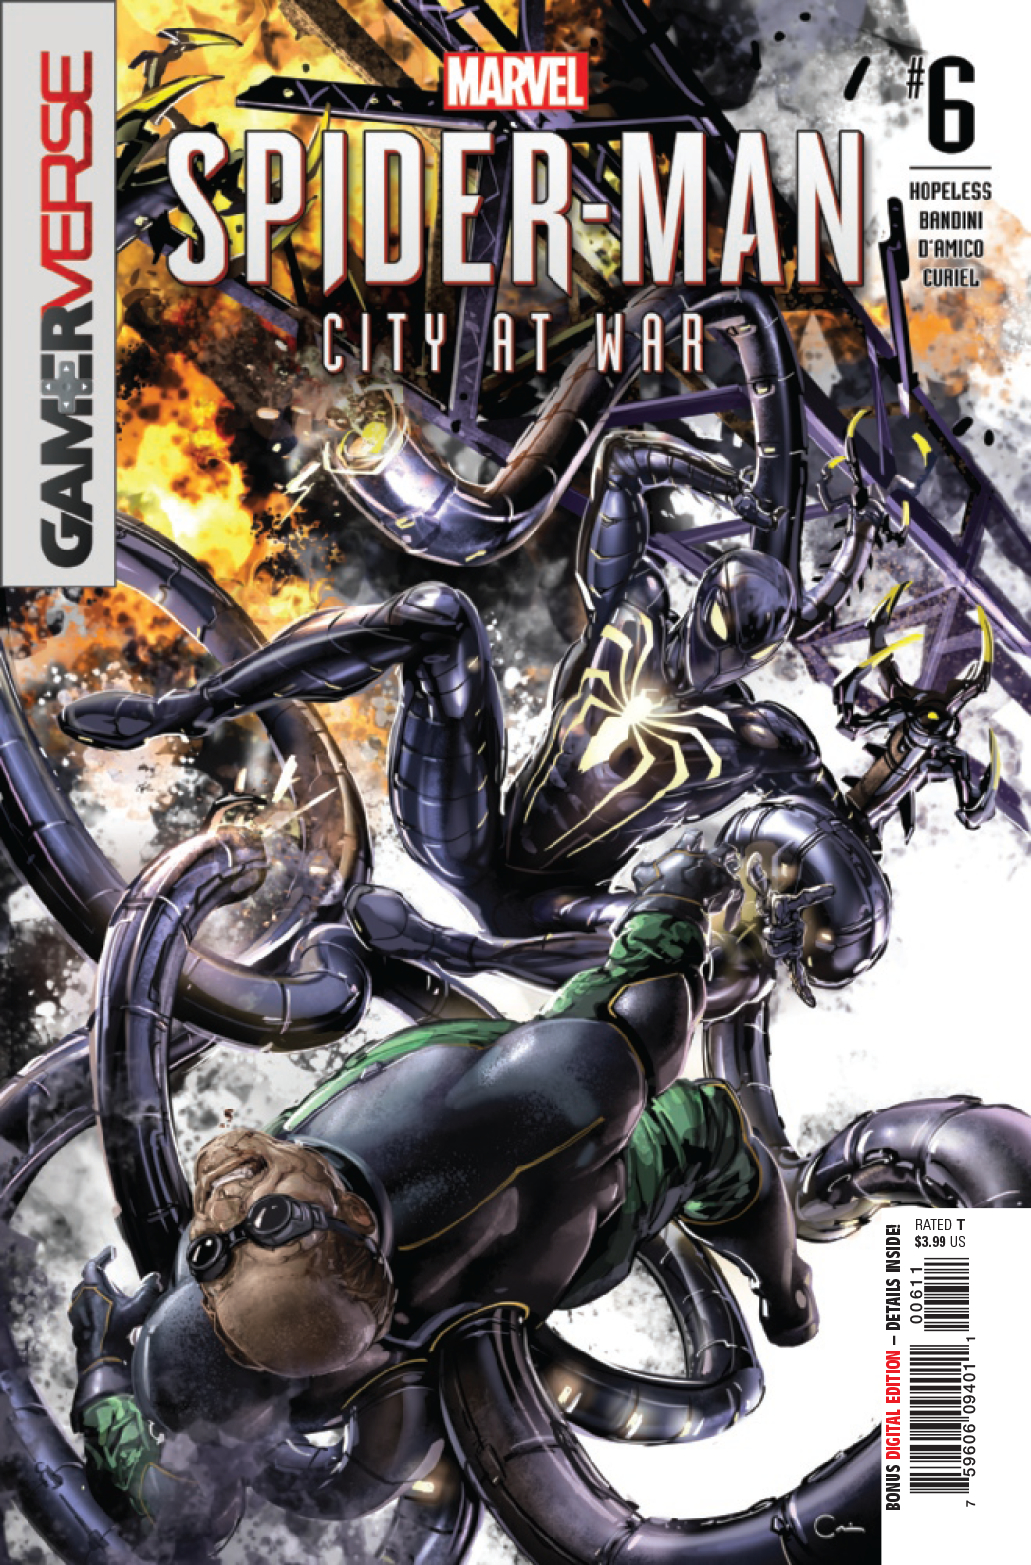 SPIDER-MAN CITY AT WAR #6 (OF 6)